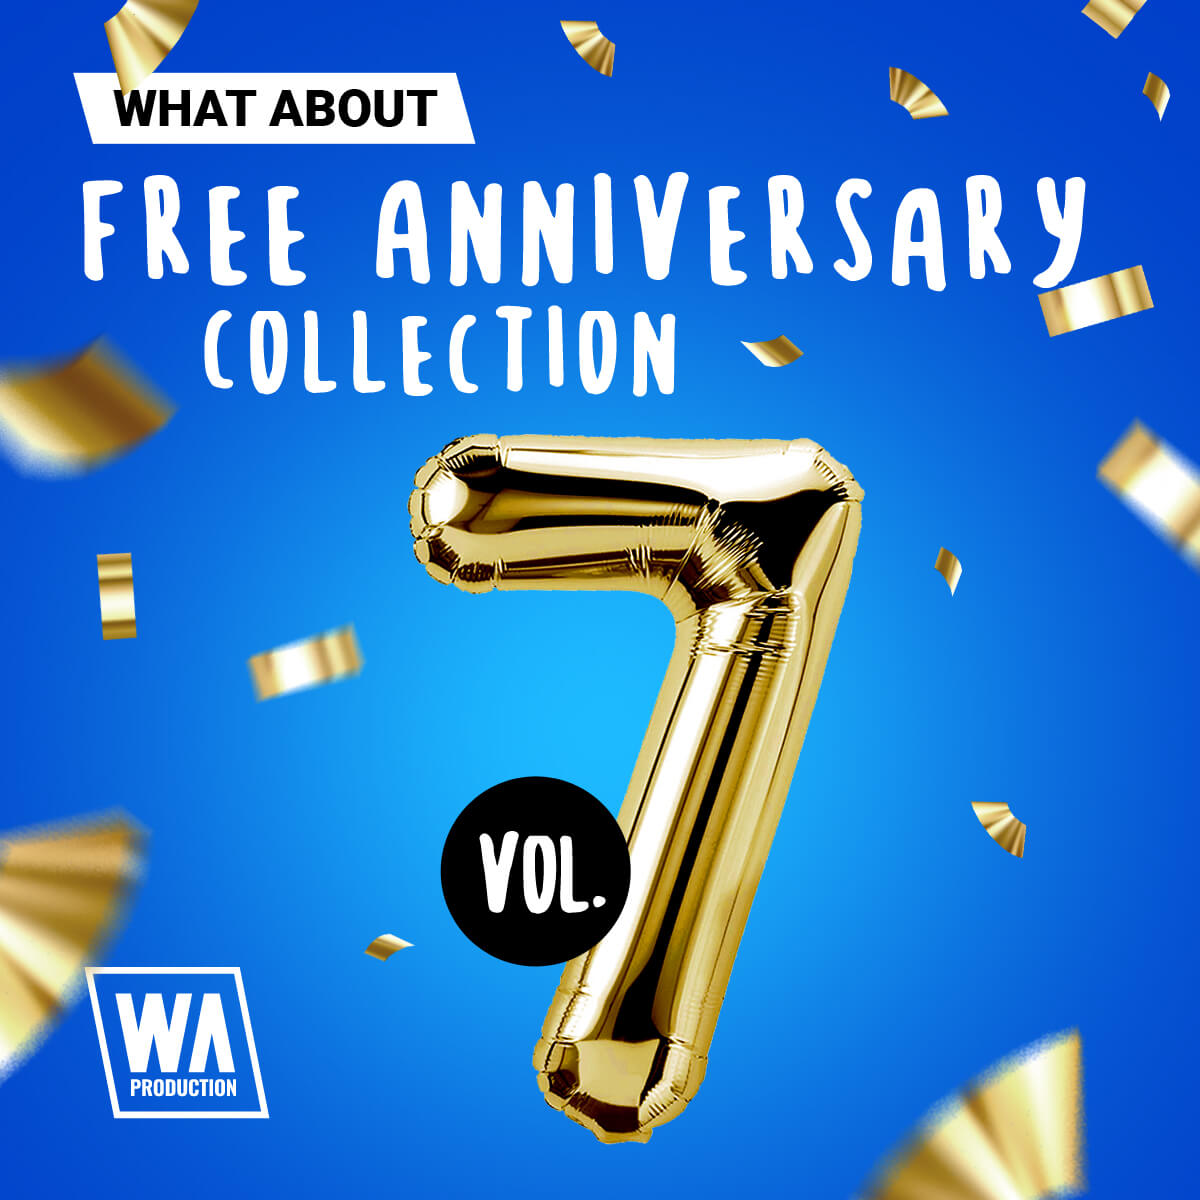 Free Anniversary Collection Vol 7